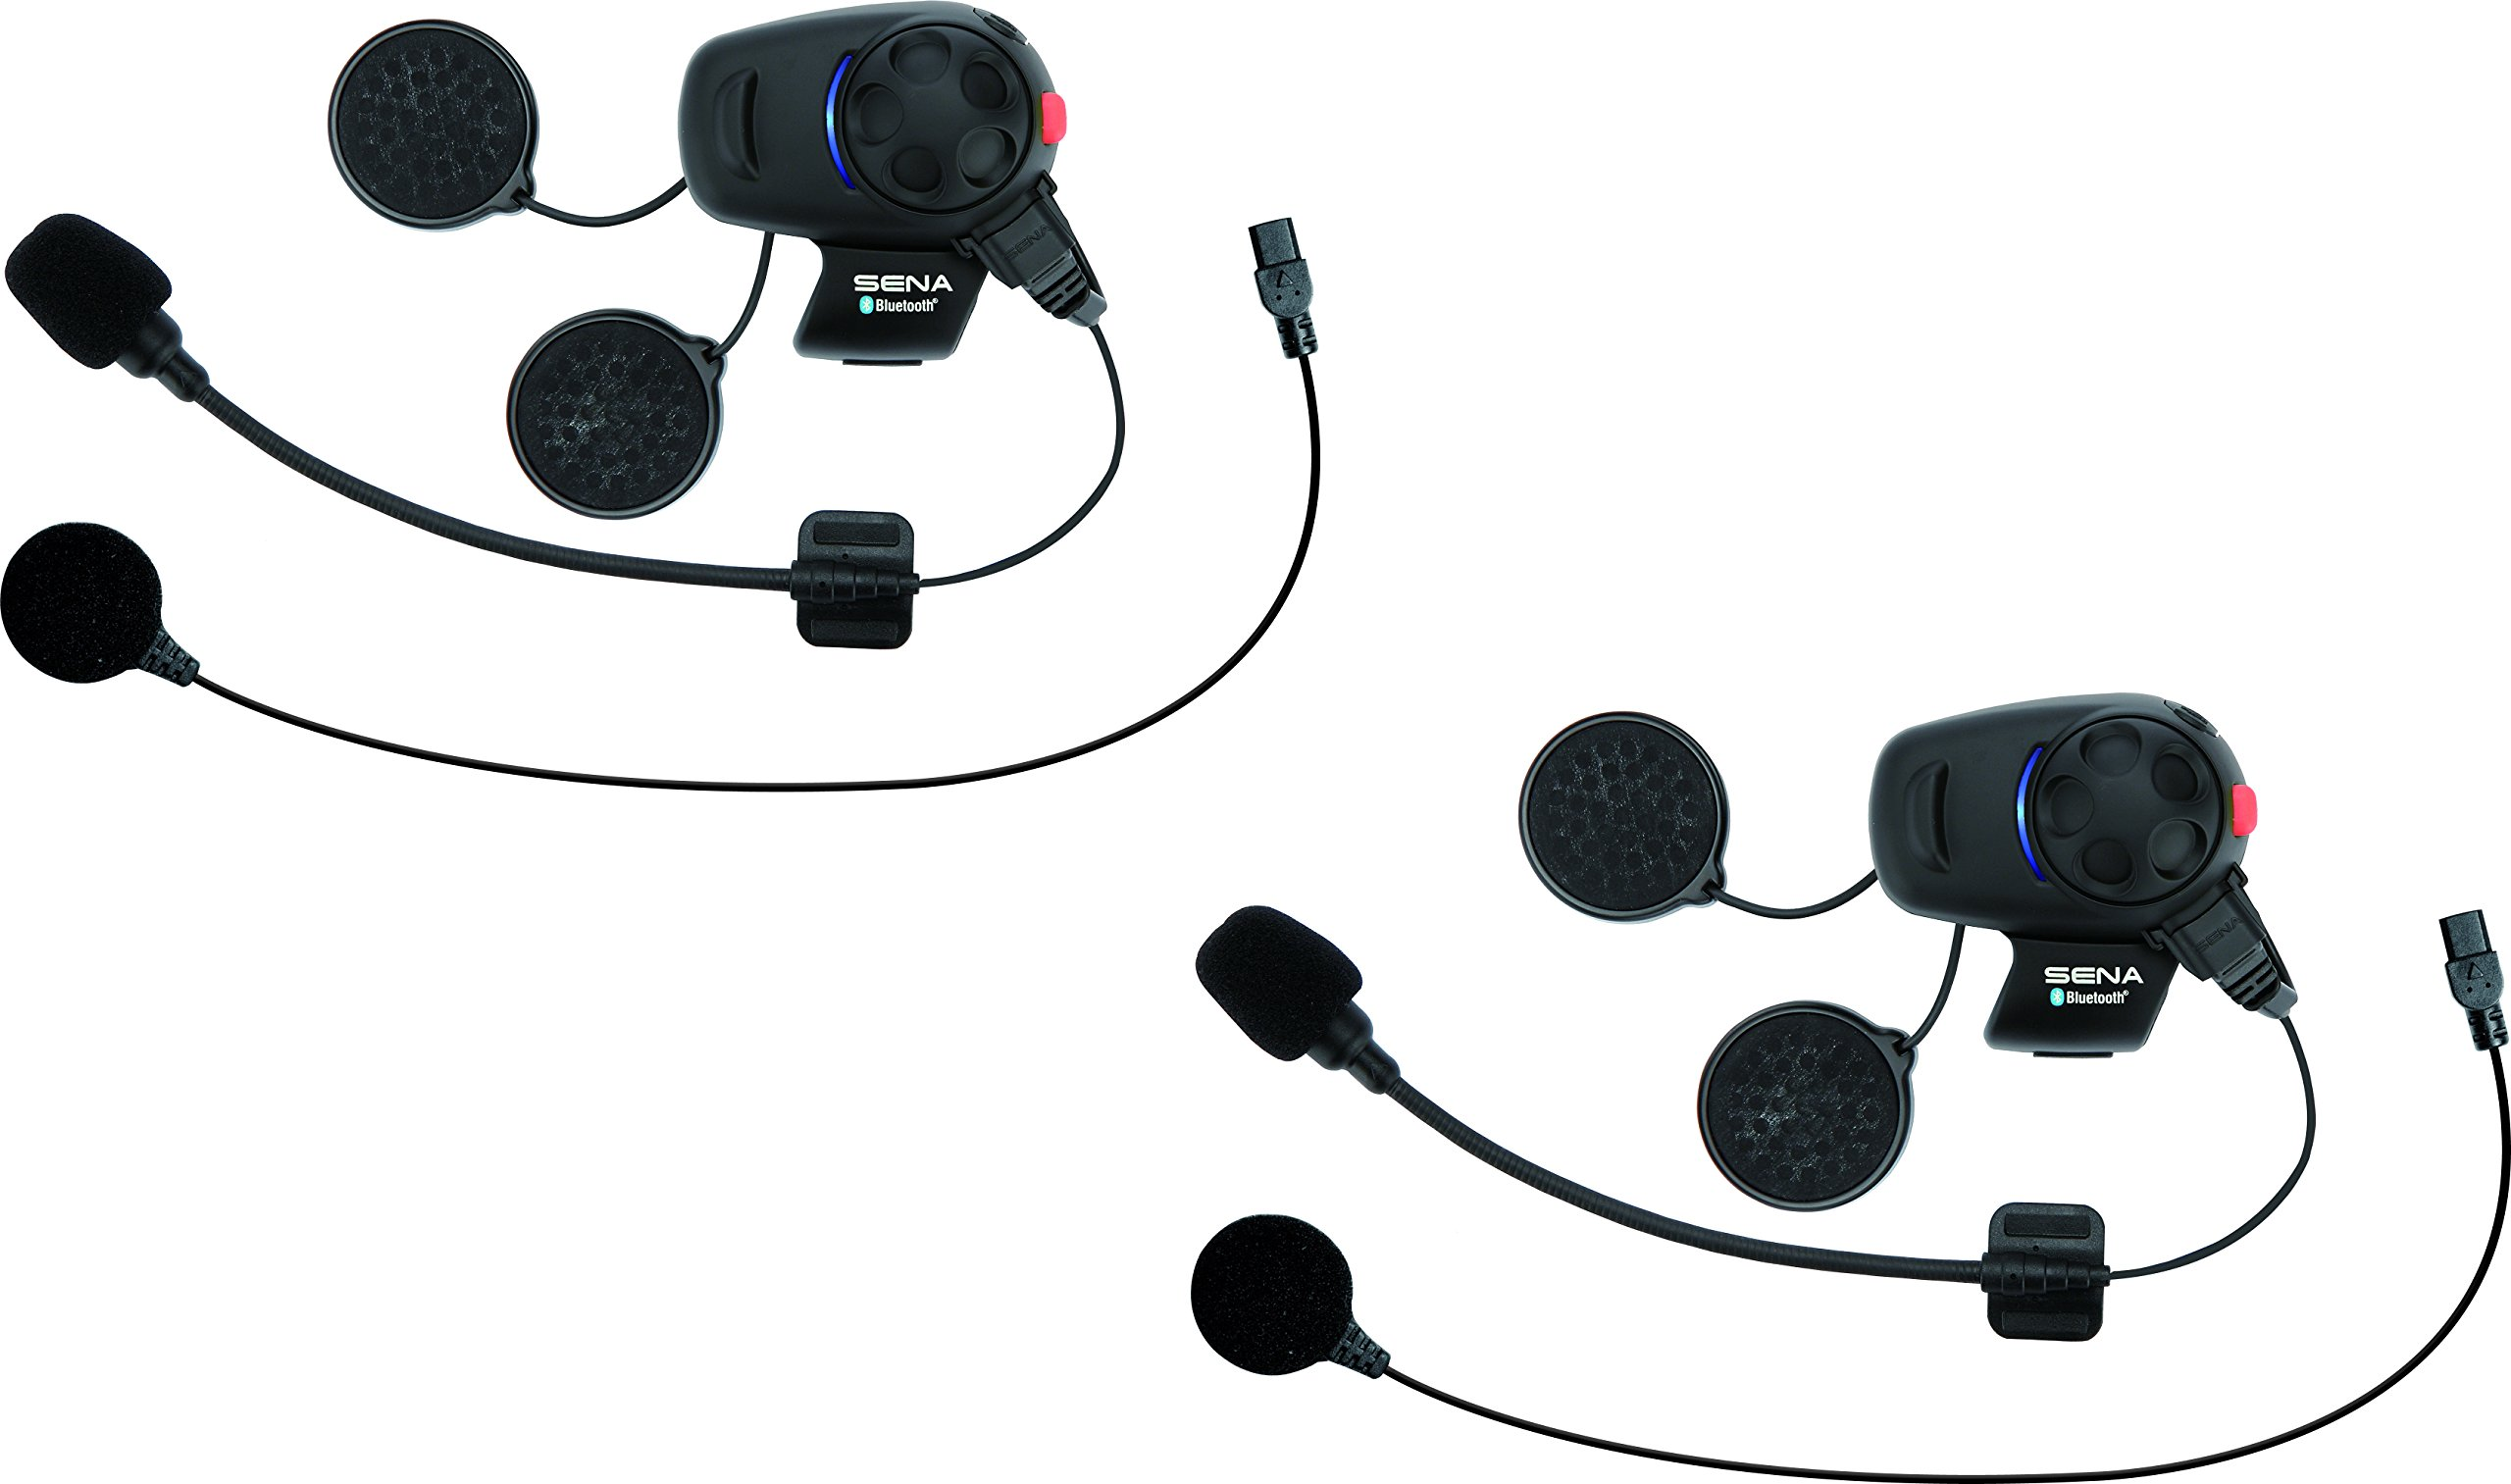 Sena Bluetooth Headset and Intercom for Scooters/Motorcycles with Universal Microphone Kit (Dual Pack)